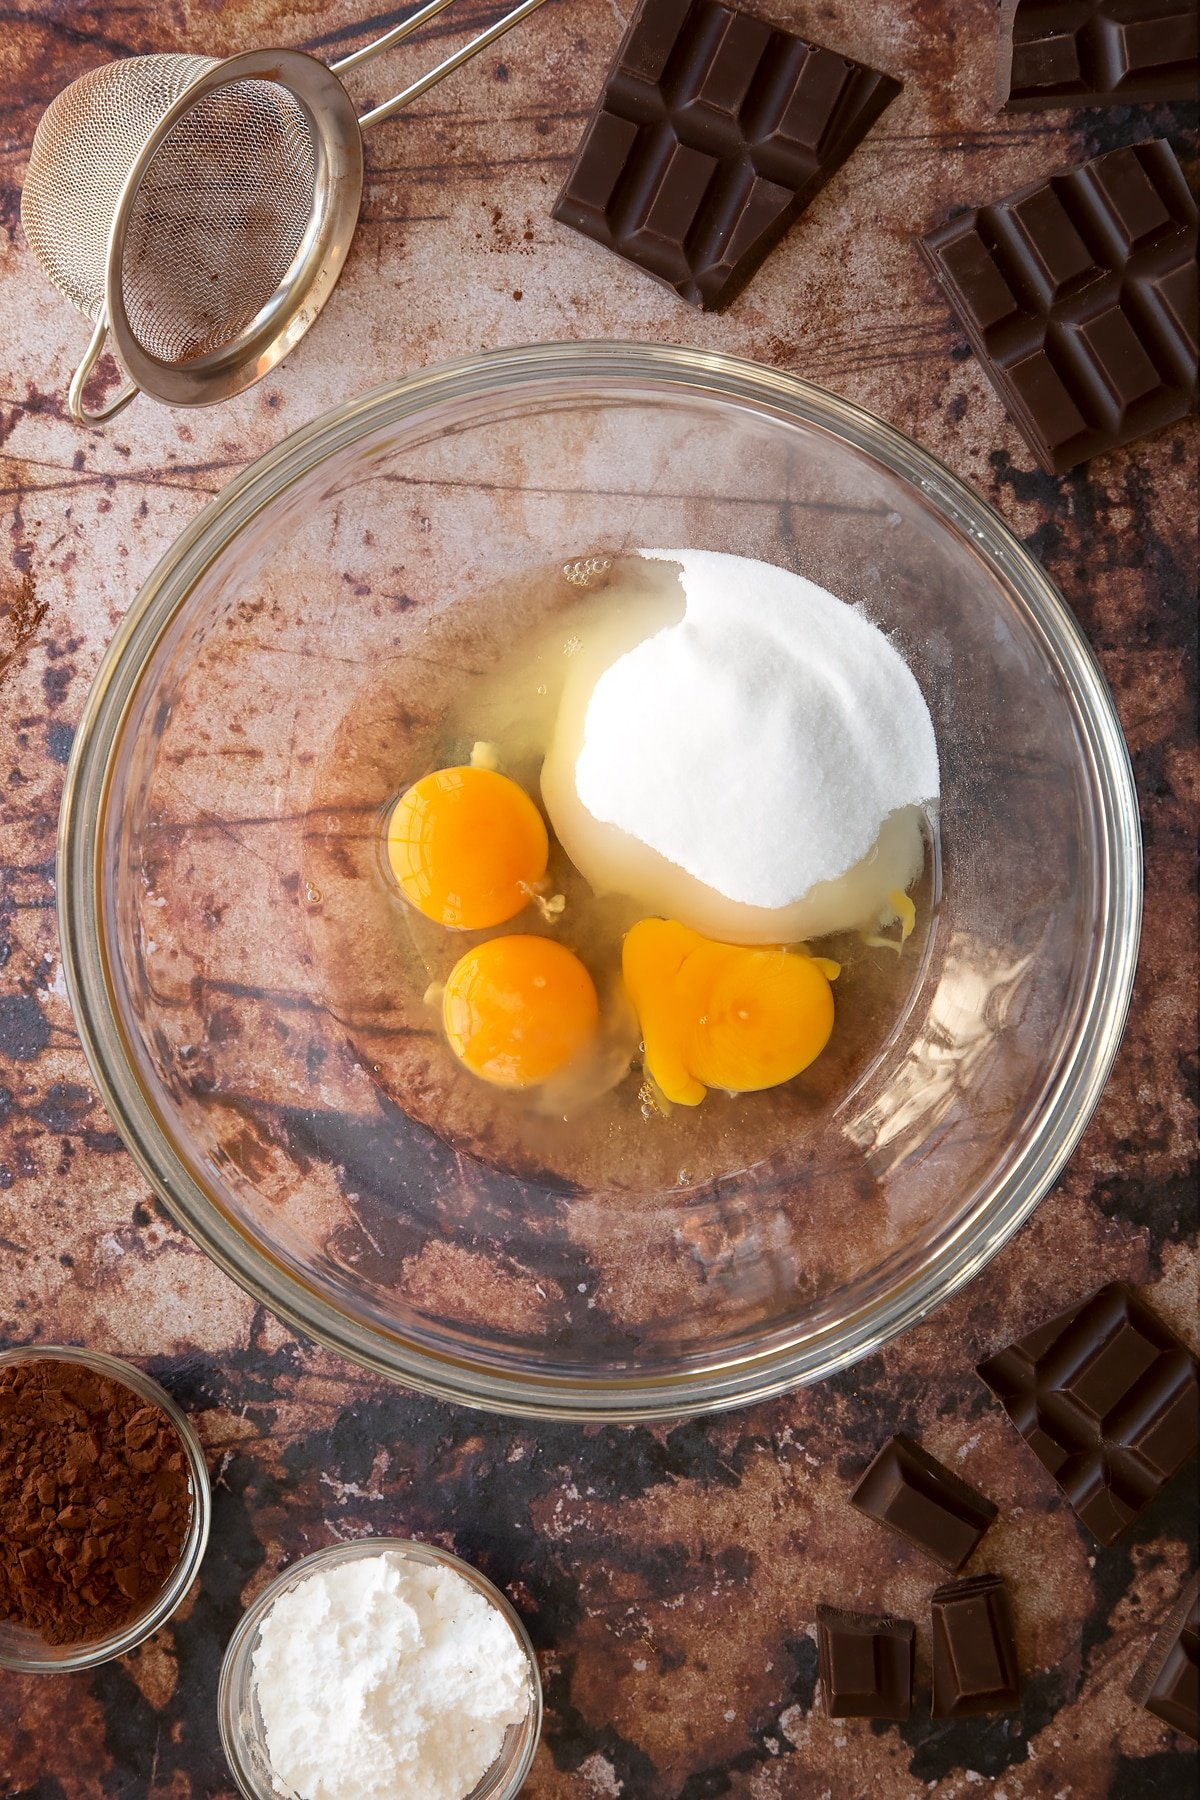 Eggs and caster sugar in a glass mixing bowl. Ingredients for the caterpillar cake recipe surround the bowl.